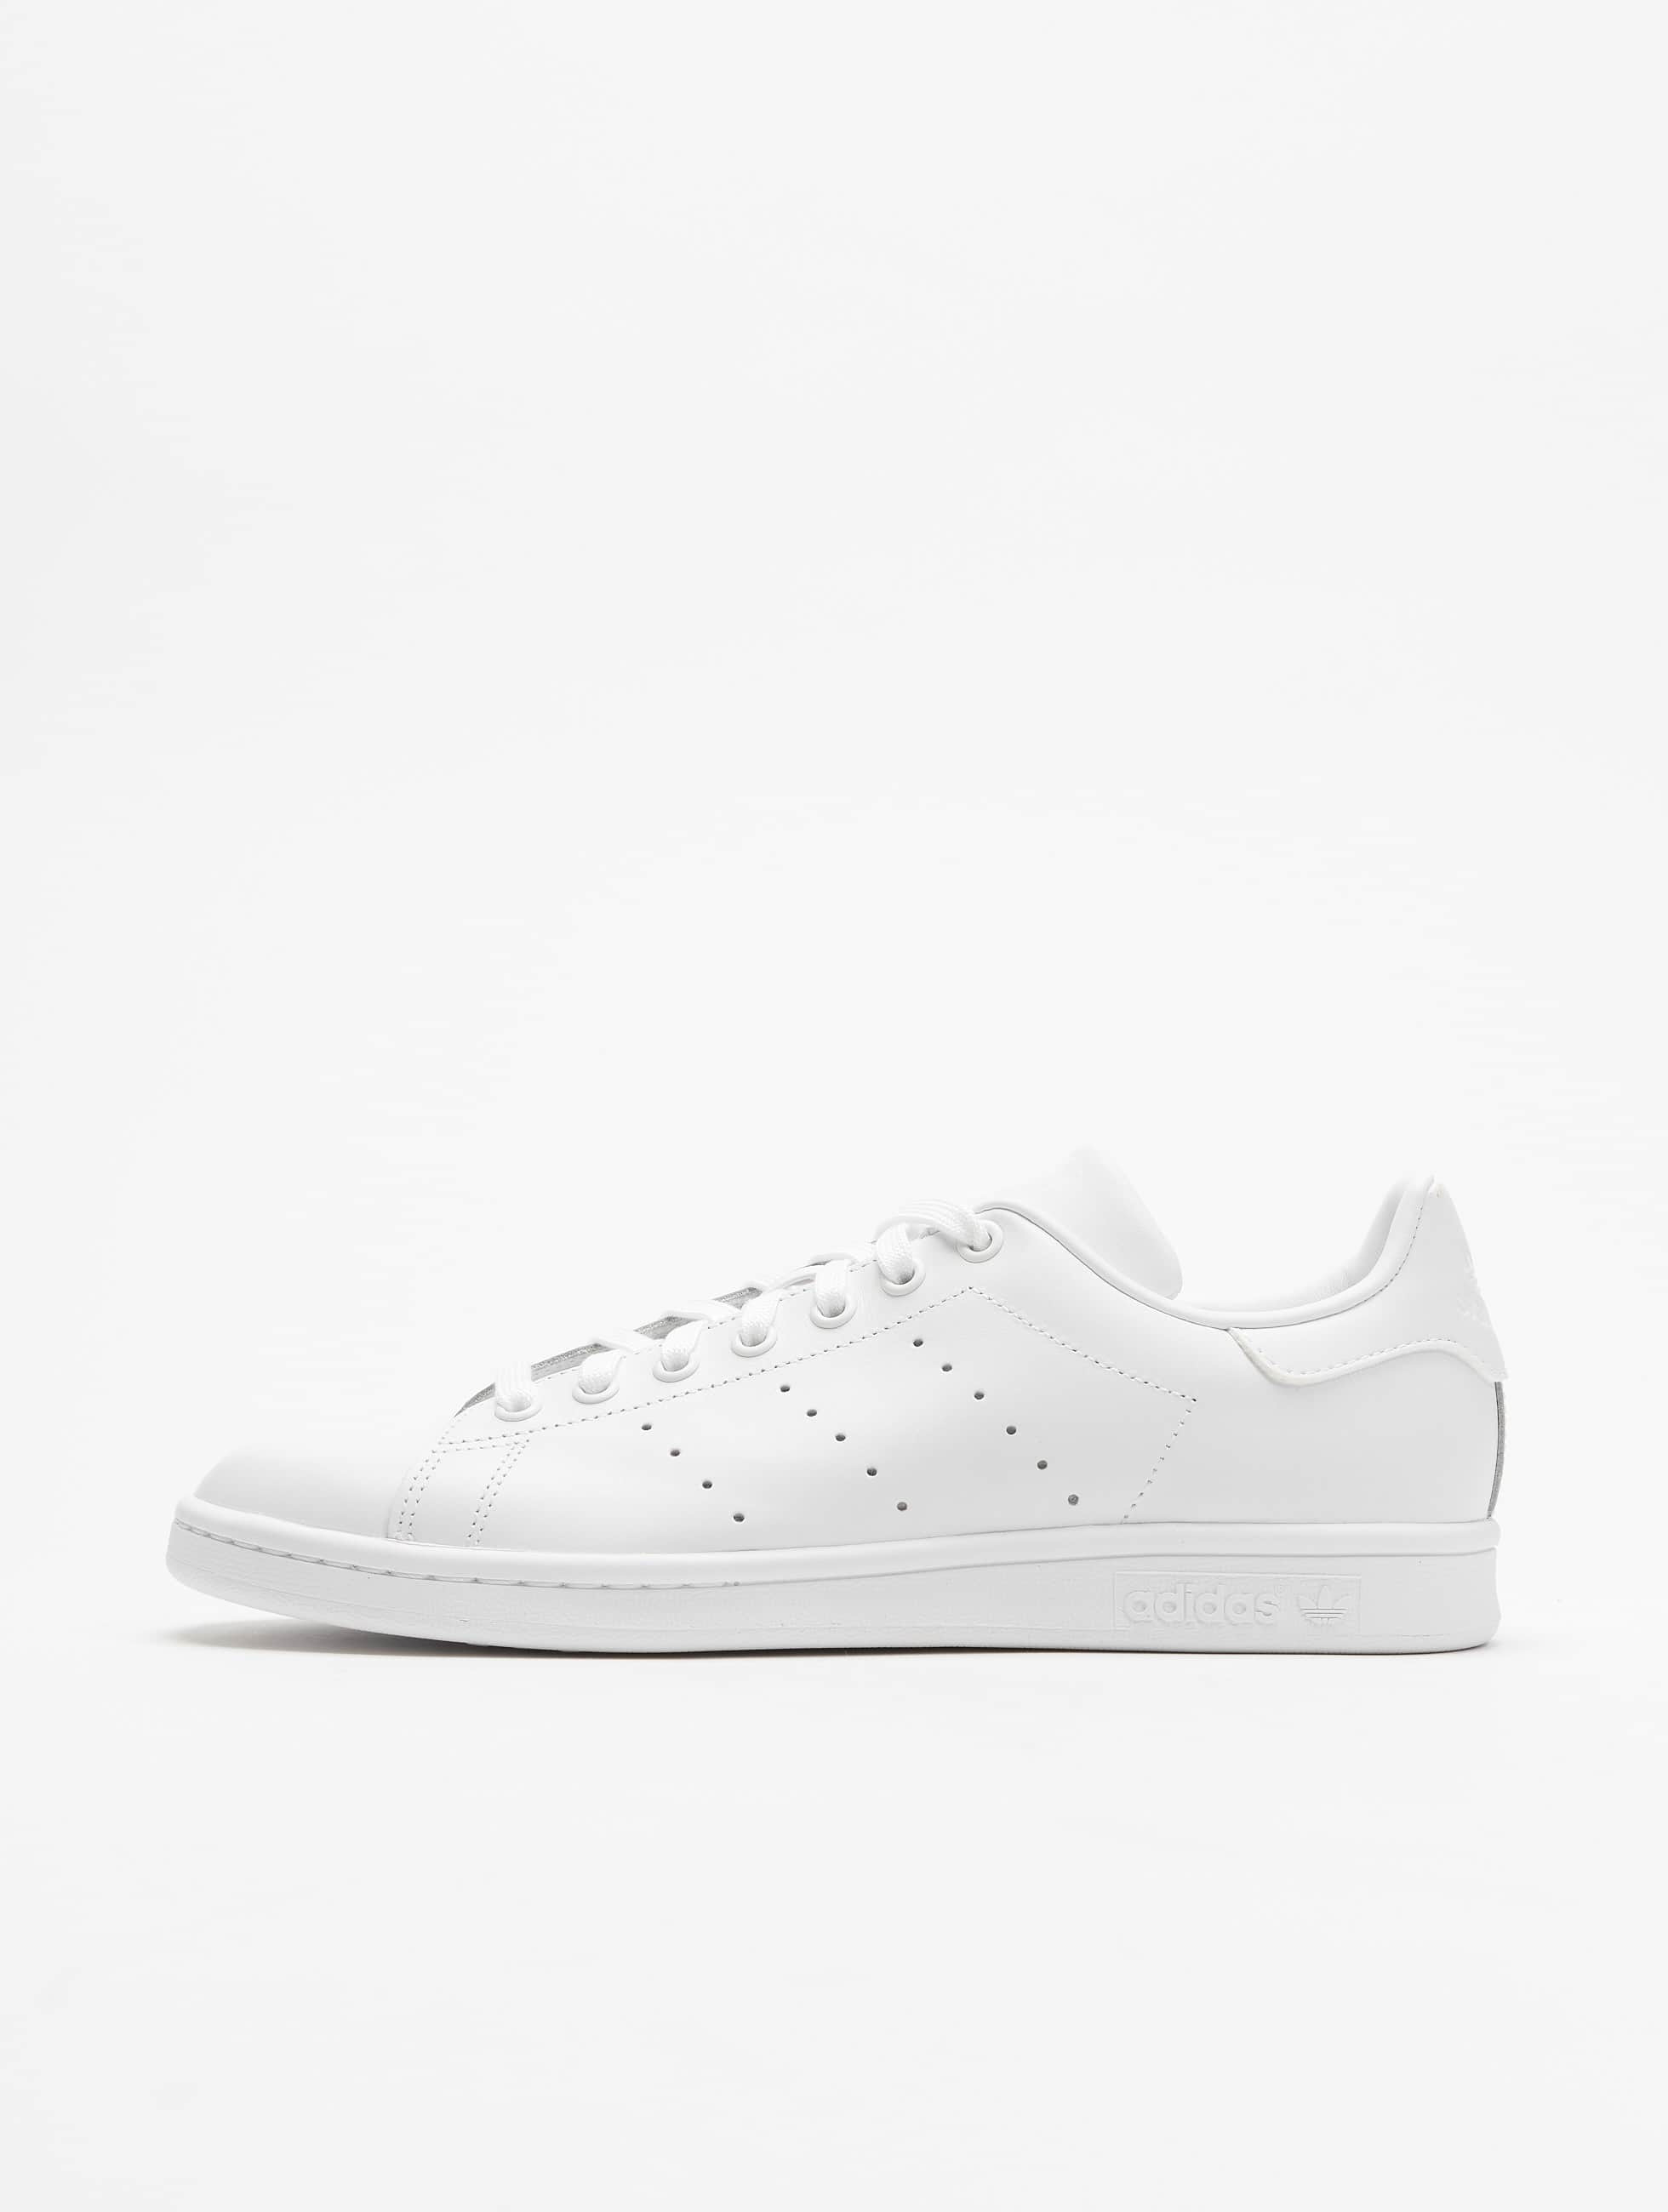 adidas Chaussures / Baskets Stan Smith en blanc